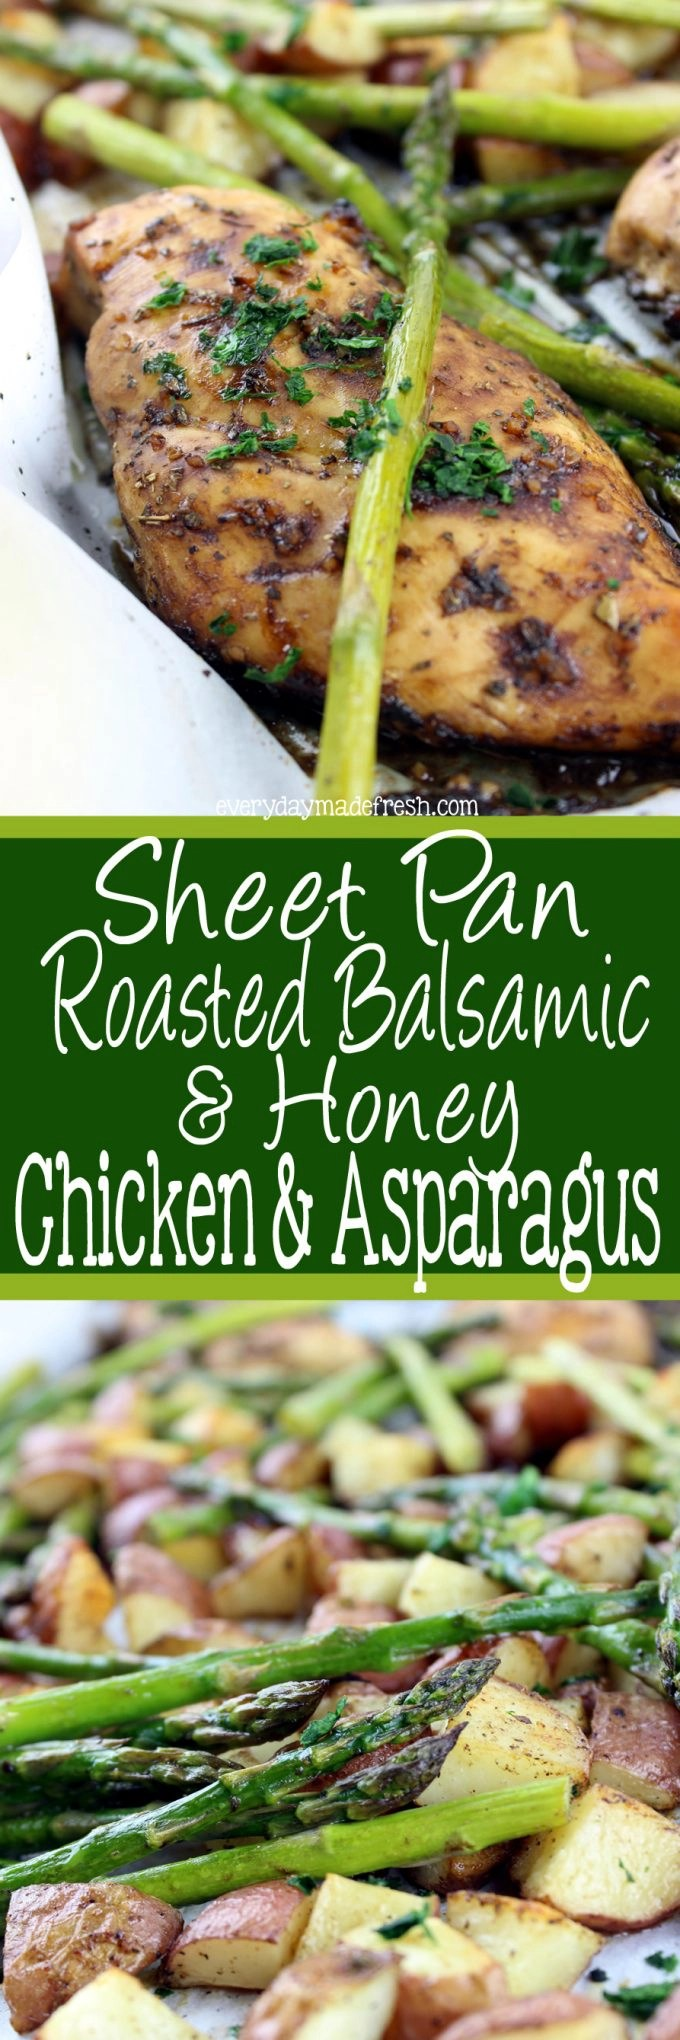 One pan meals are the way to go, and this sweet and tangy Sheet Pan Roasted Balsamic & Honey Chicken & Asparagus hits all the right taste buds! | EverydayMadeFresh.com